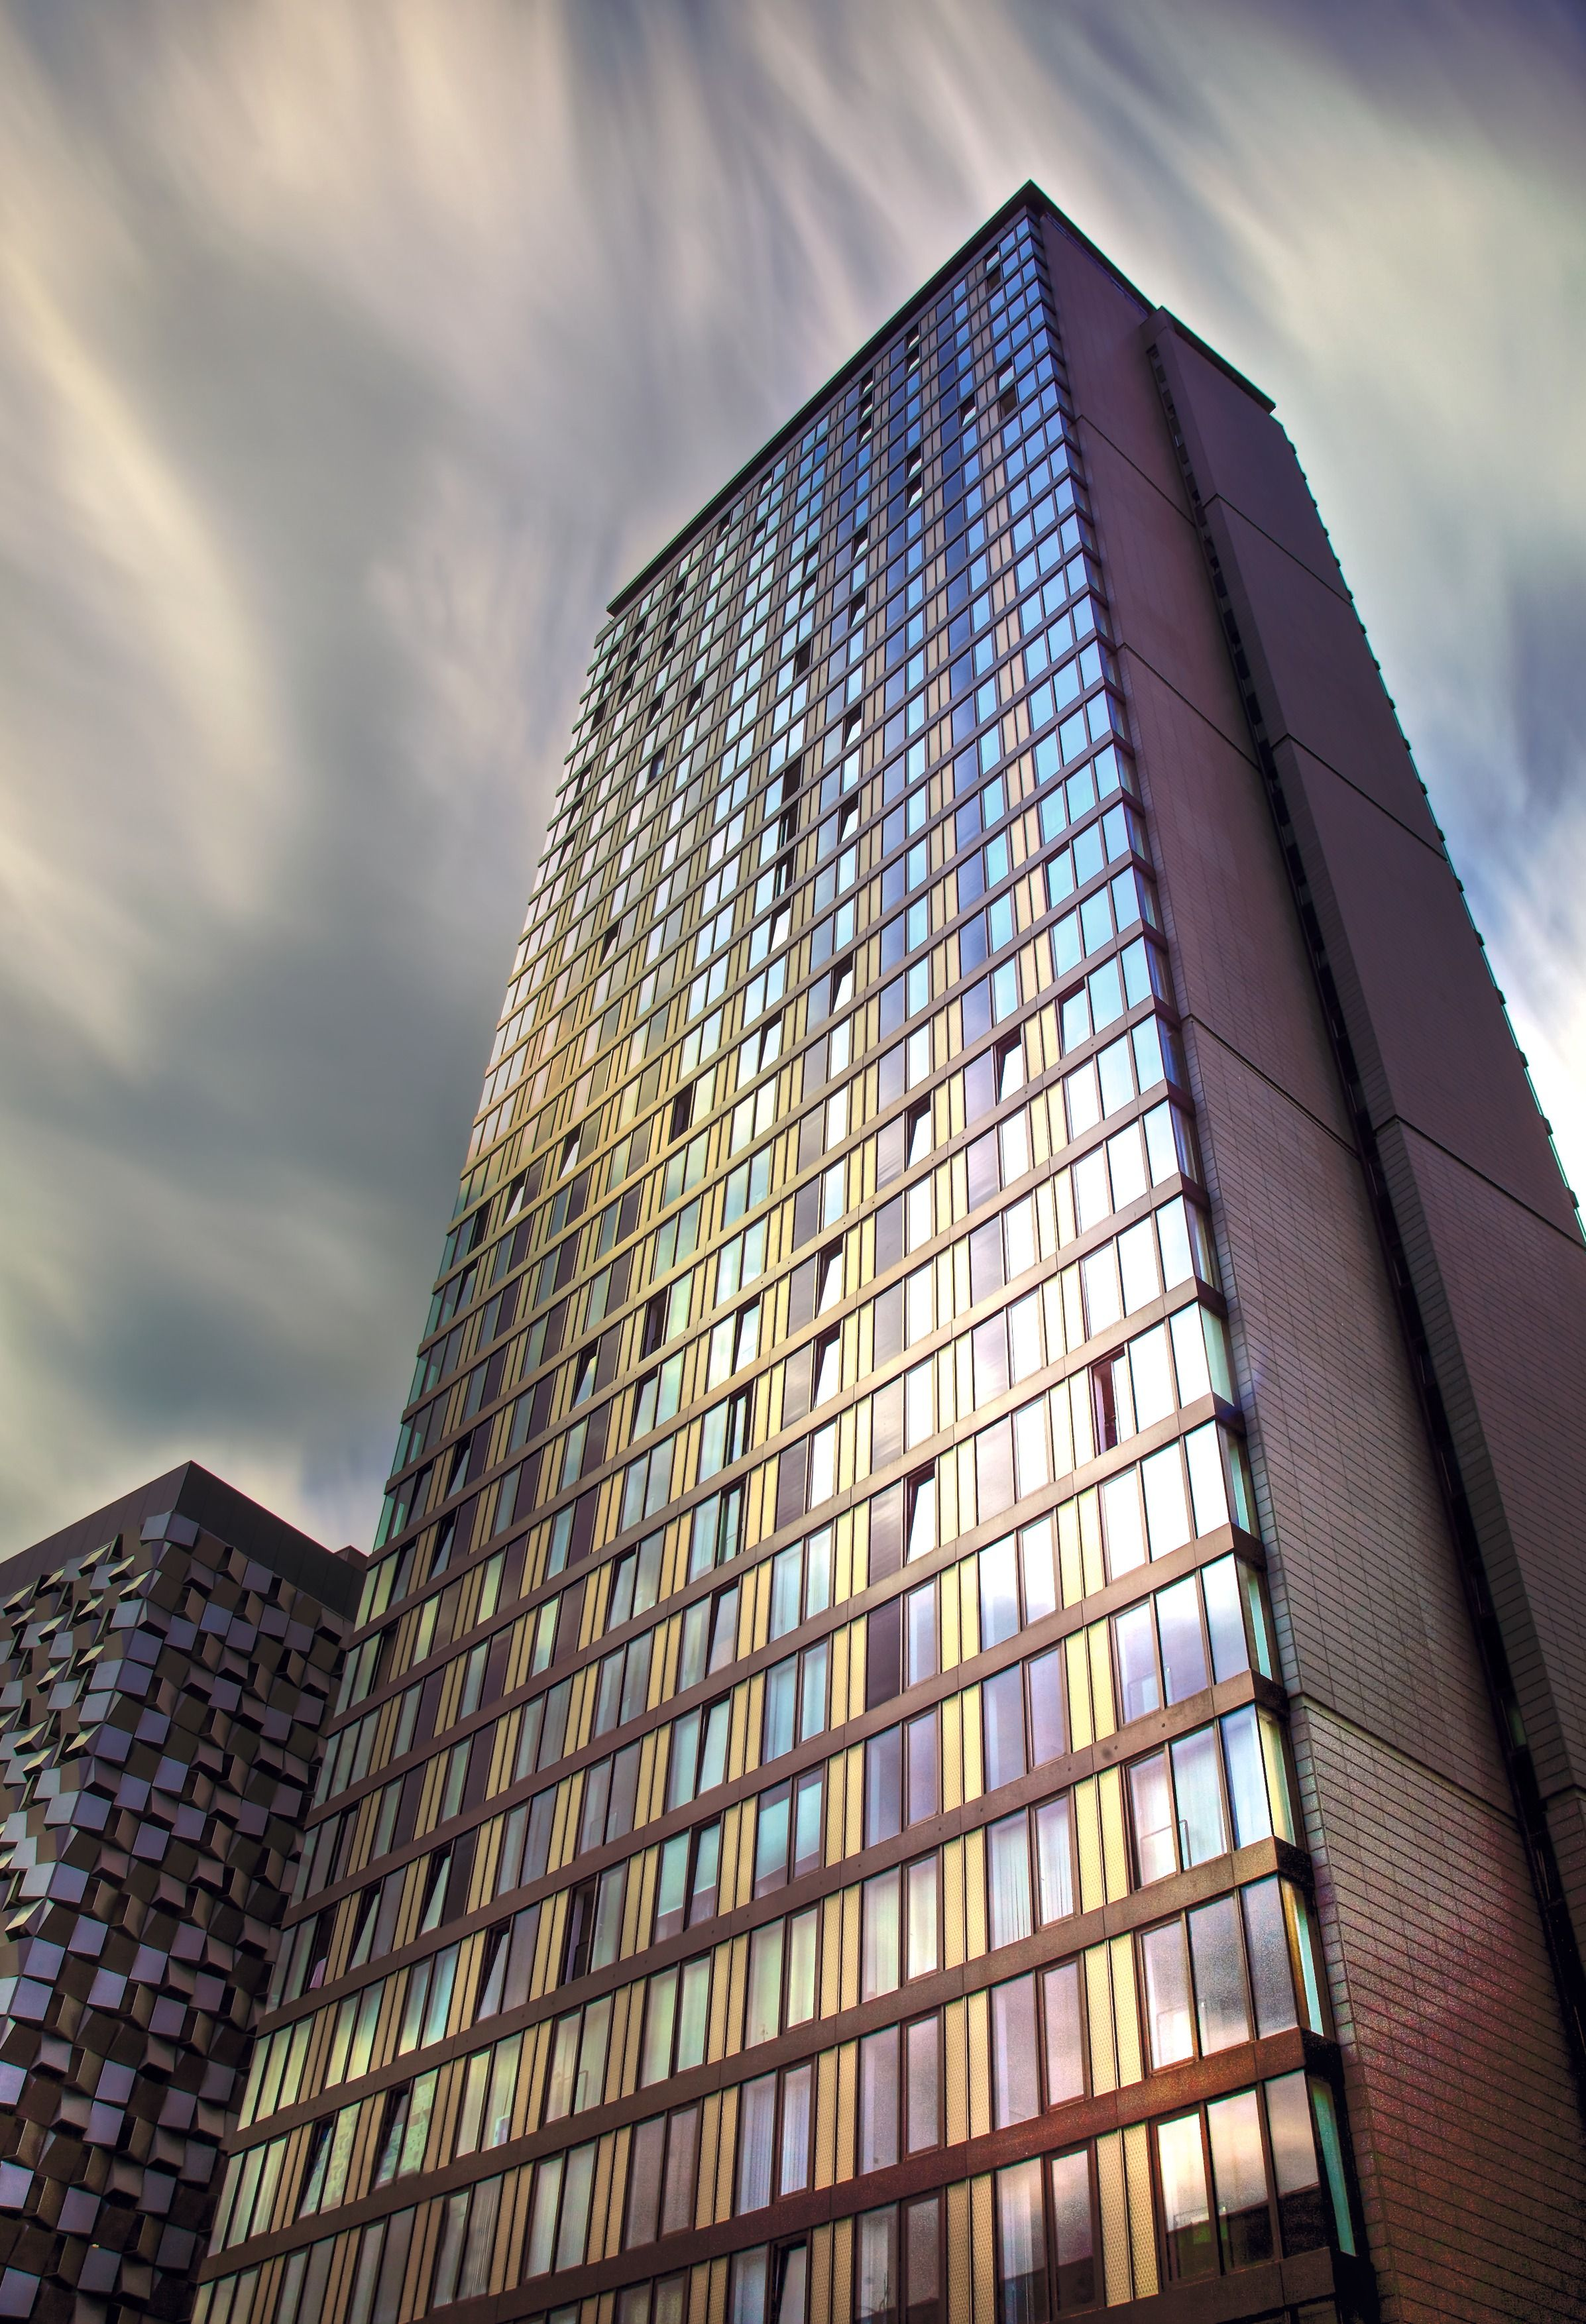 St Paul S Apartments Sheffield Conran And Partners Http Www Conranandpartners